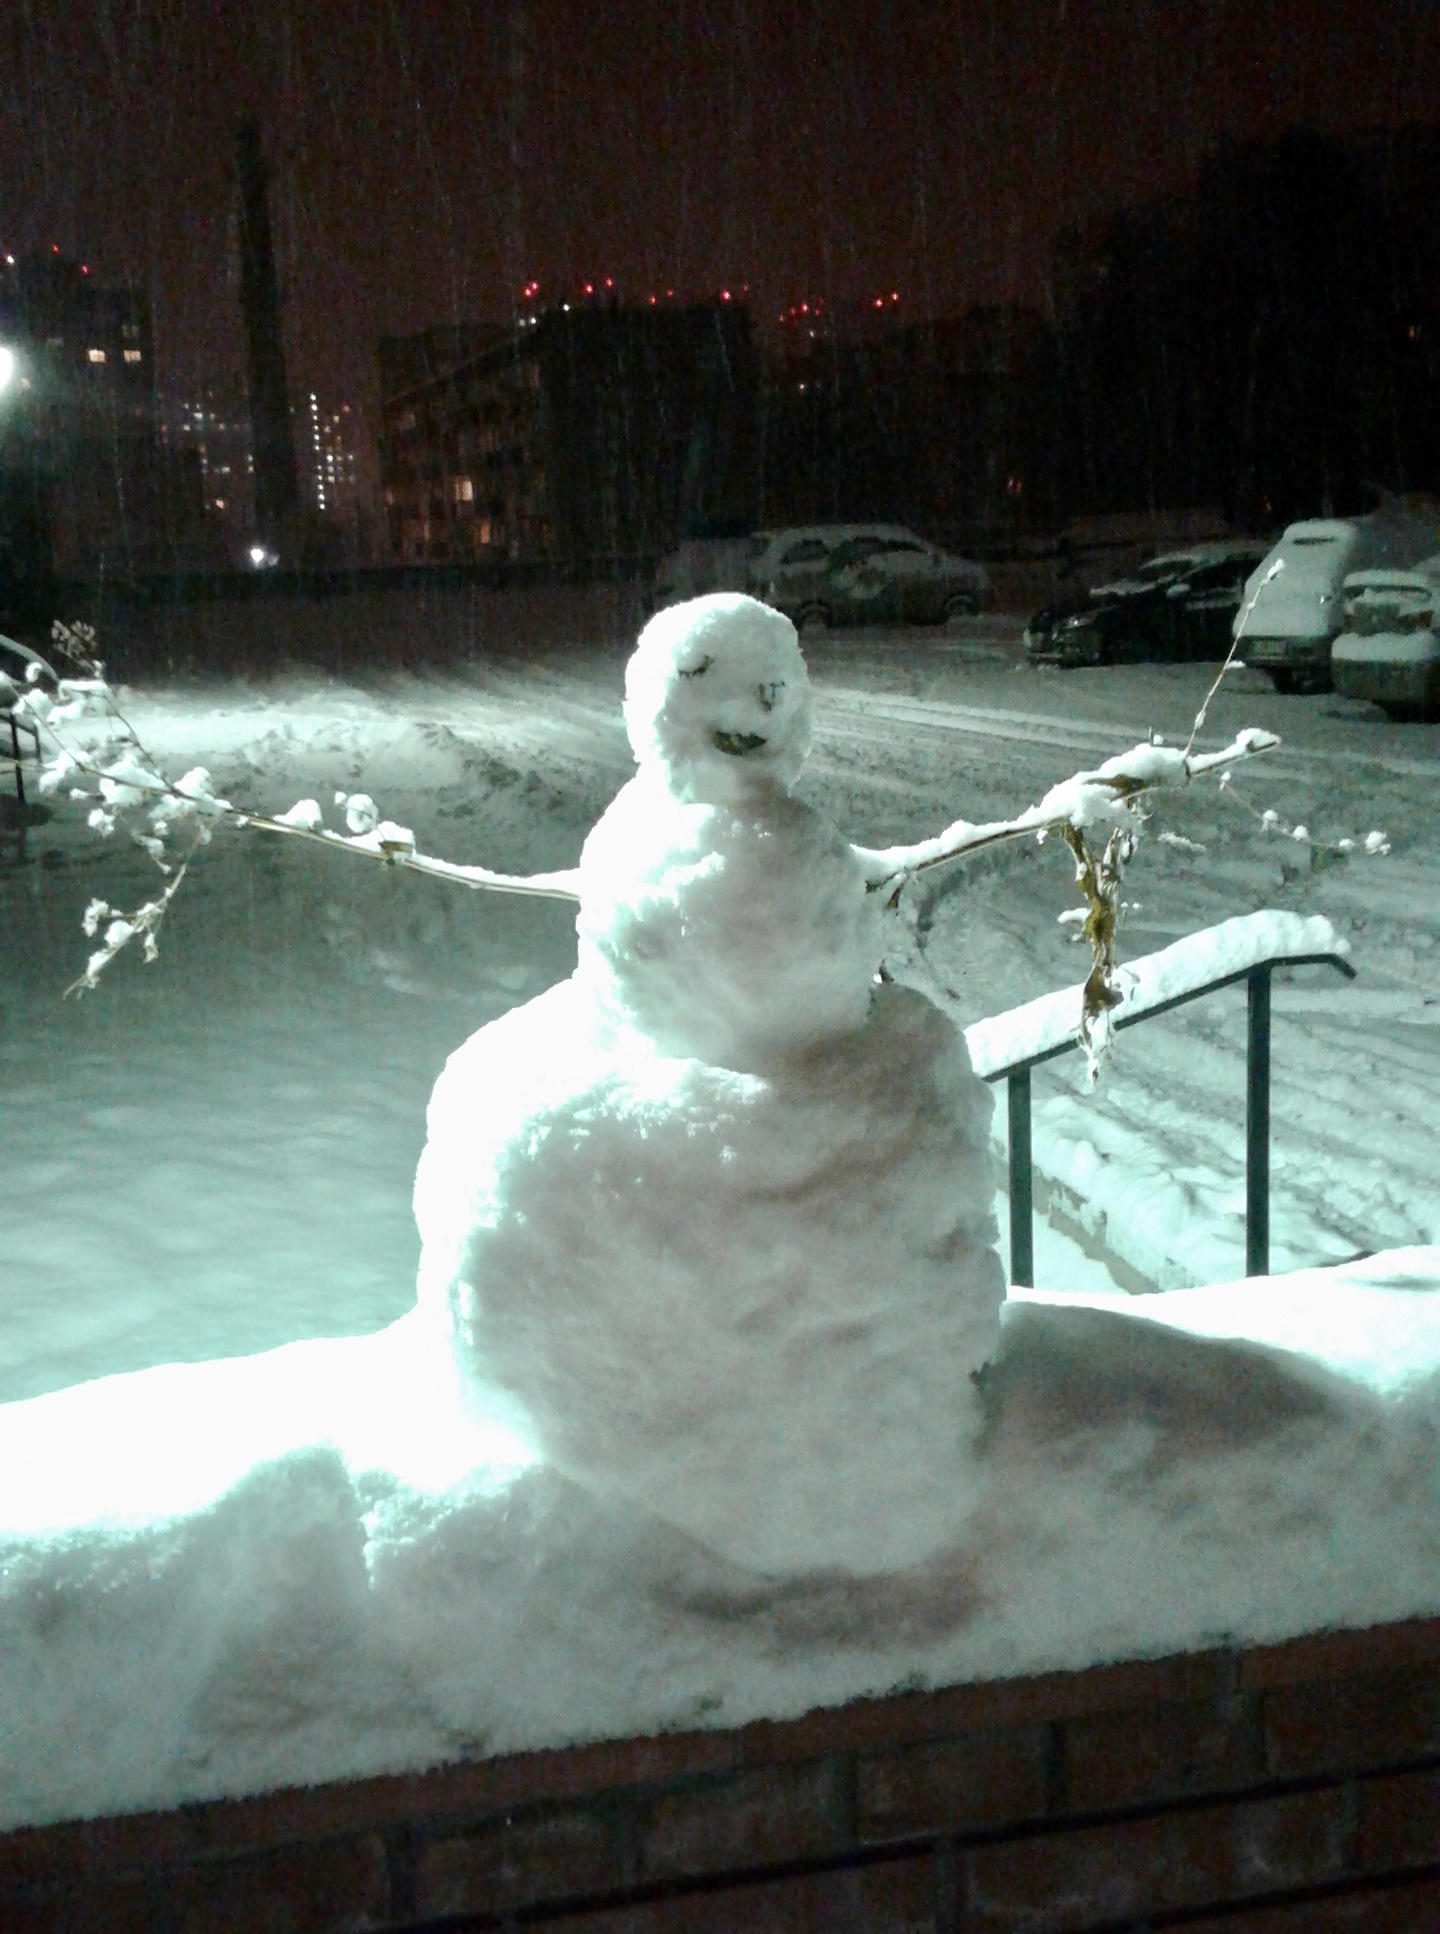 The official Russo-American Friendship Snowwoman. (Not actually official. Please see Fulbright/State Department Disclaimer below.)